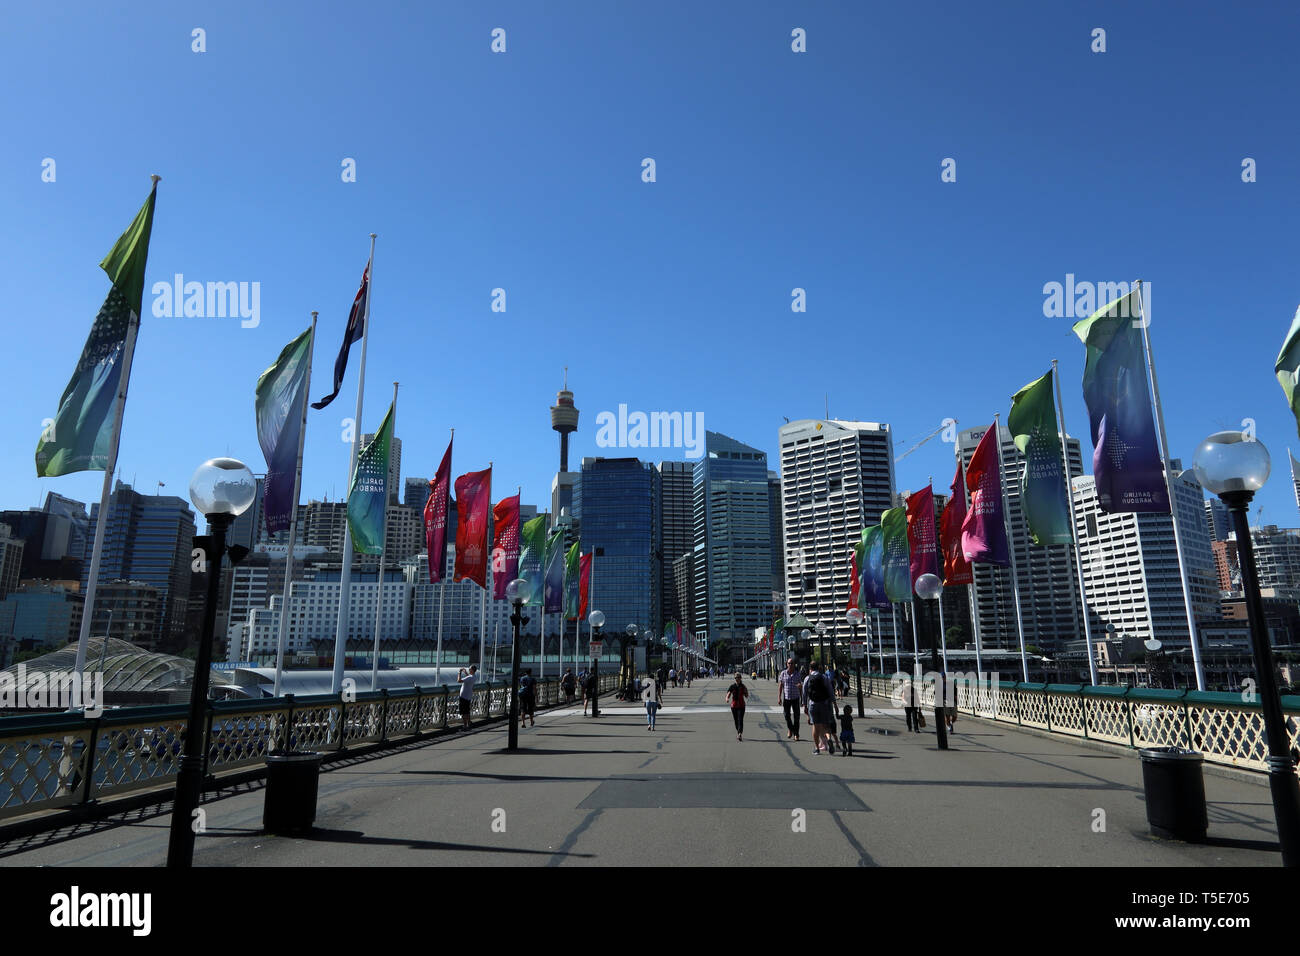 Darling Harbour, Sydney, Australie Photo Stock